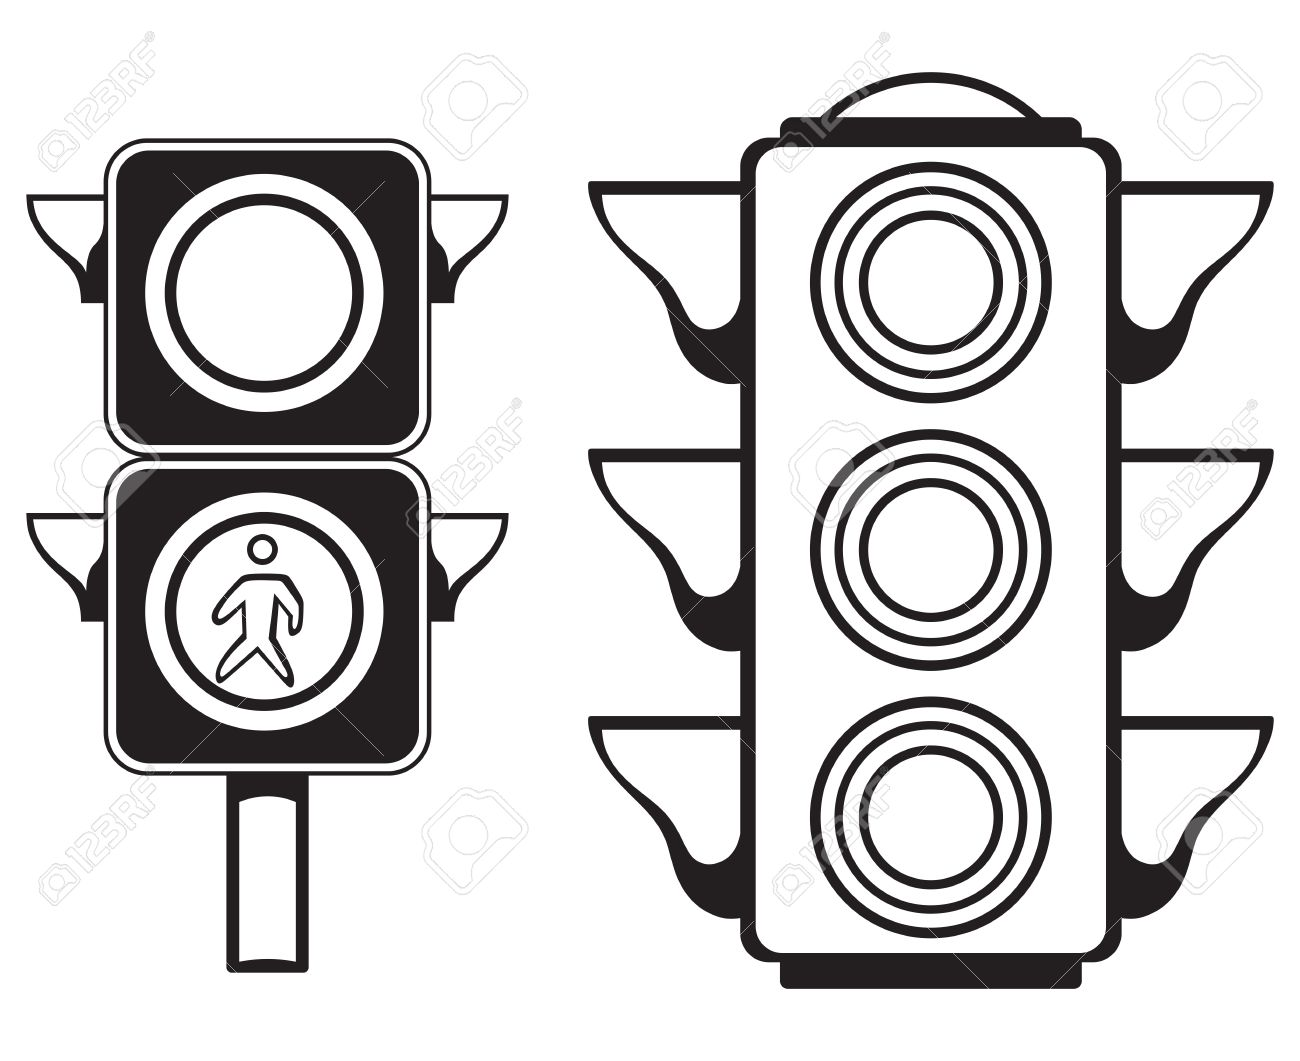 Traffic Light Isolated On White Background Stock Vector